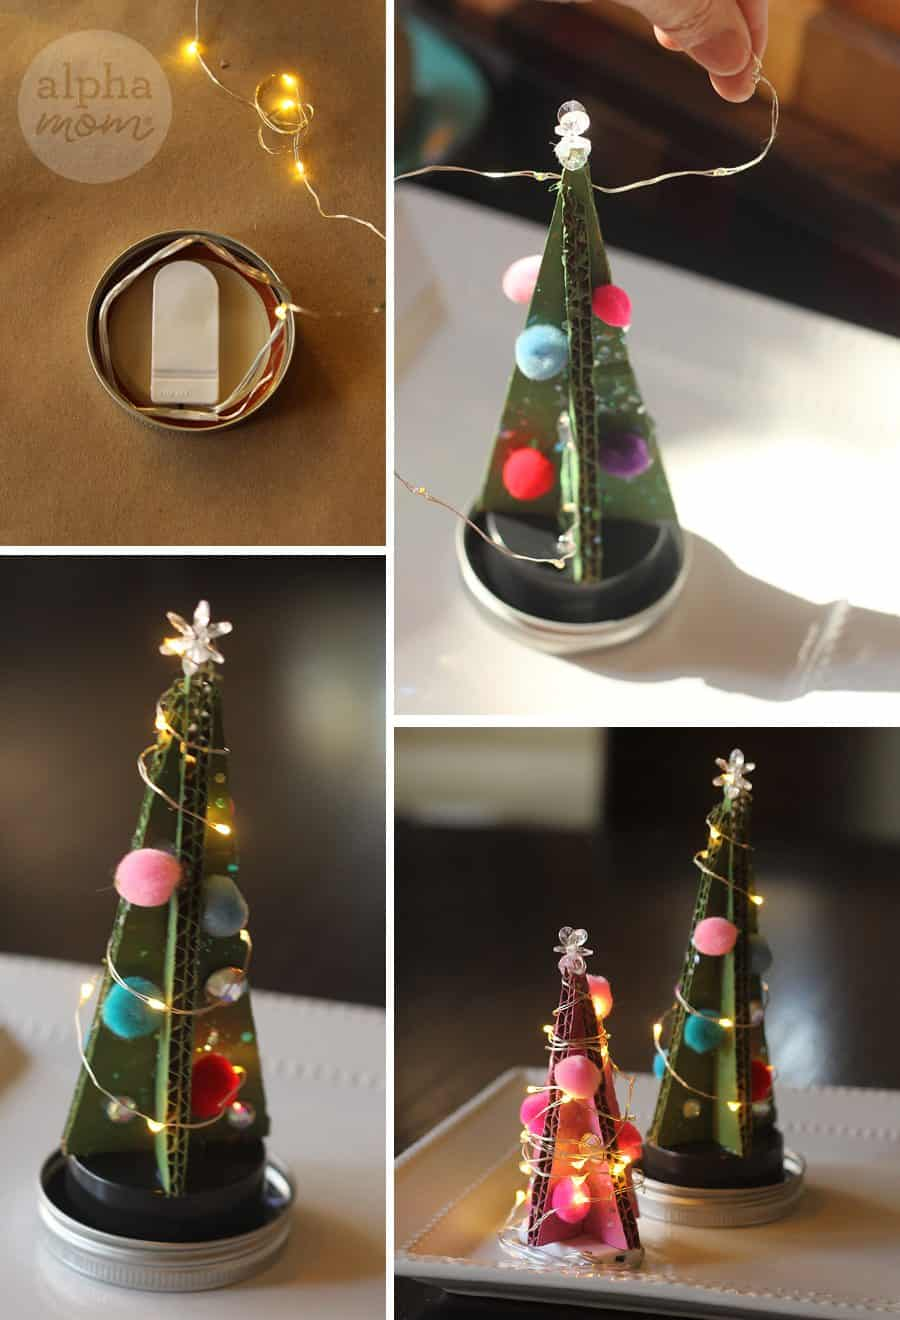 Tiny Cardboard Christmas Trees (add safe lights) by Brenda Ponnay for Alphamom.com